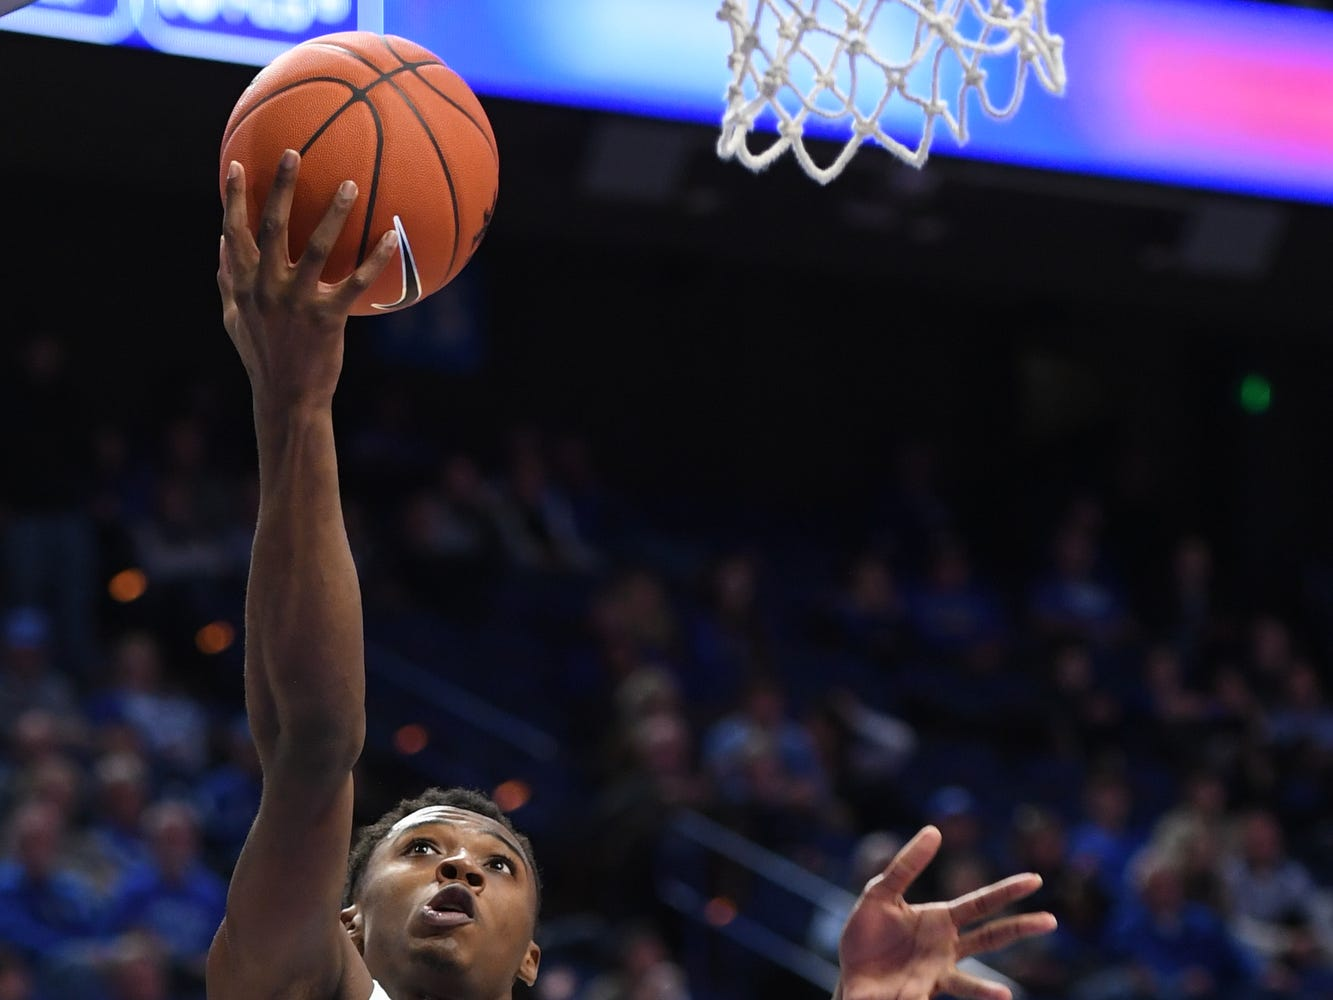 UK G Ashton Hagans lays up the ball during the University of Kentucky mens basketball game against Monmouth at Rupp Arena in Lexington, Kentucky on Wednesday, November 28, 2018.